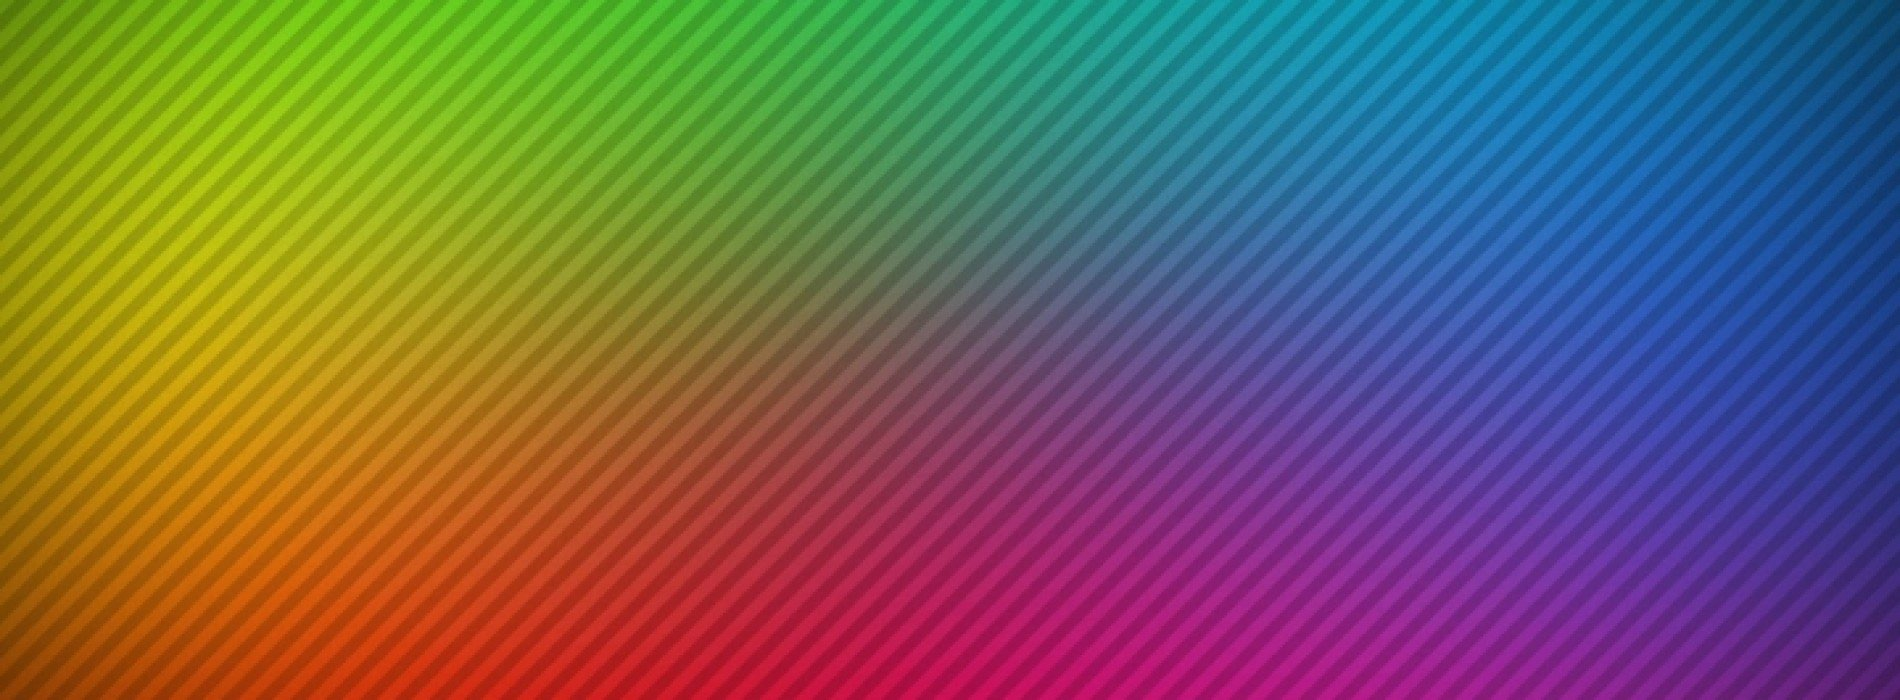 15 bright and colorful wallpapers for your Android device